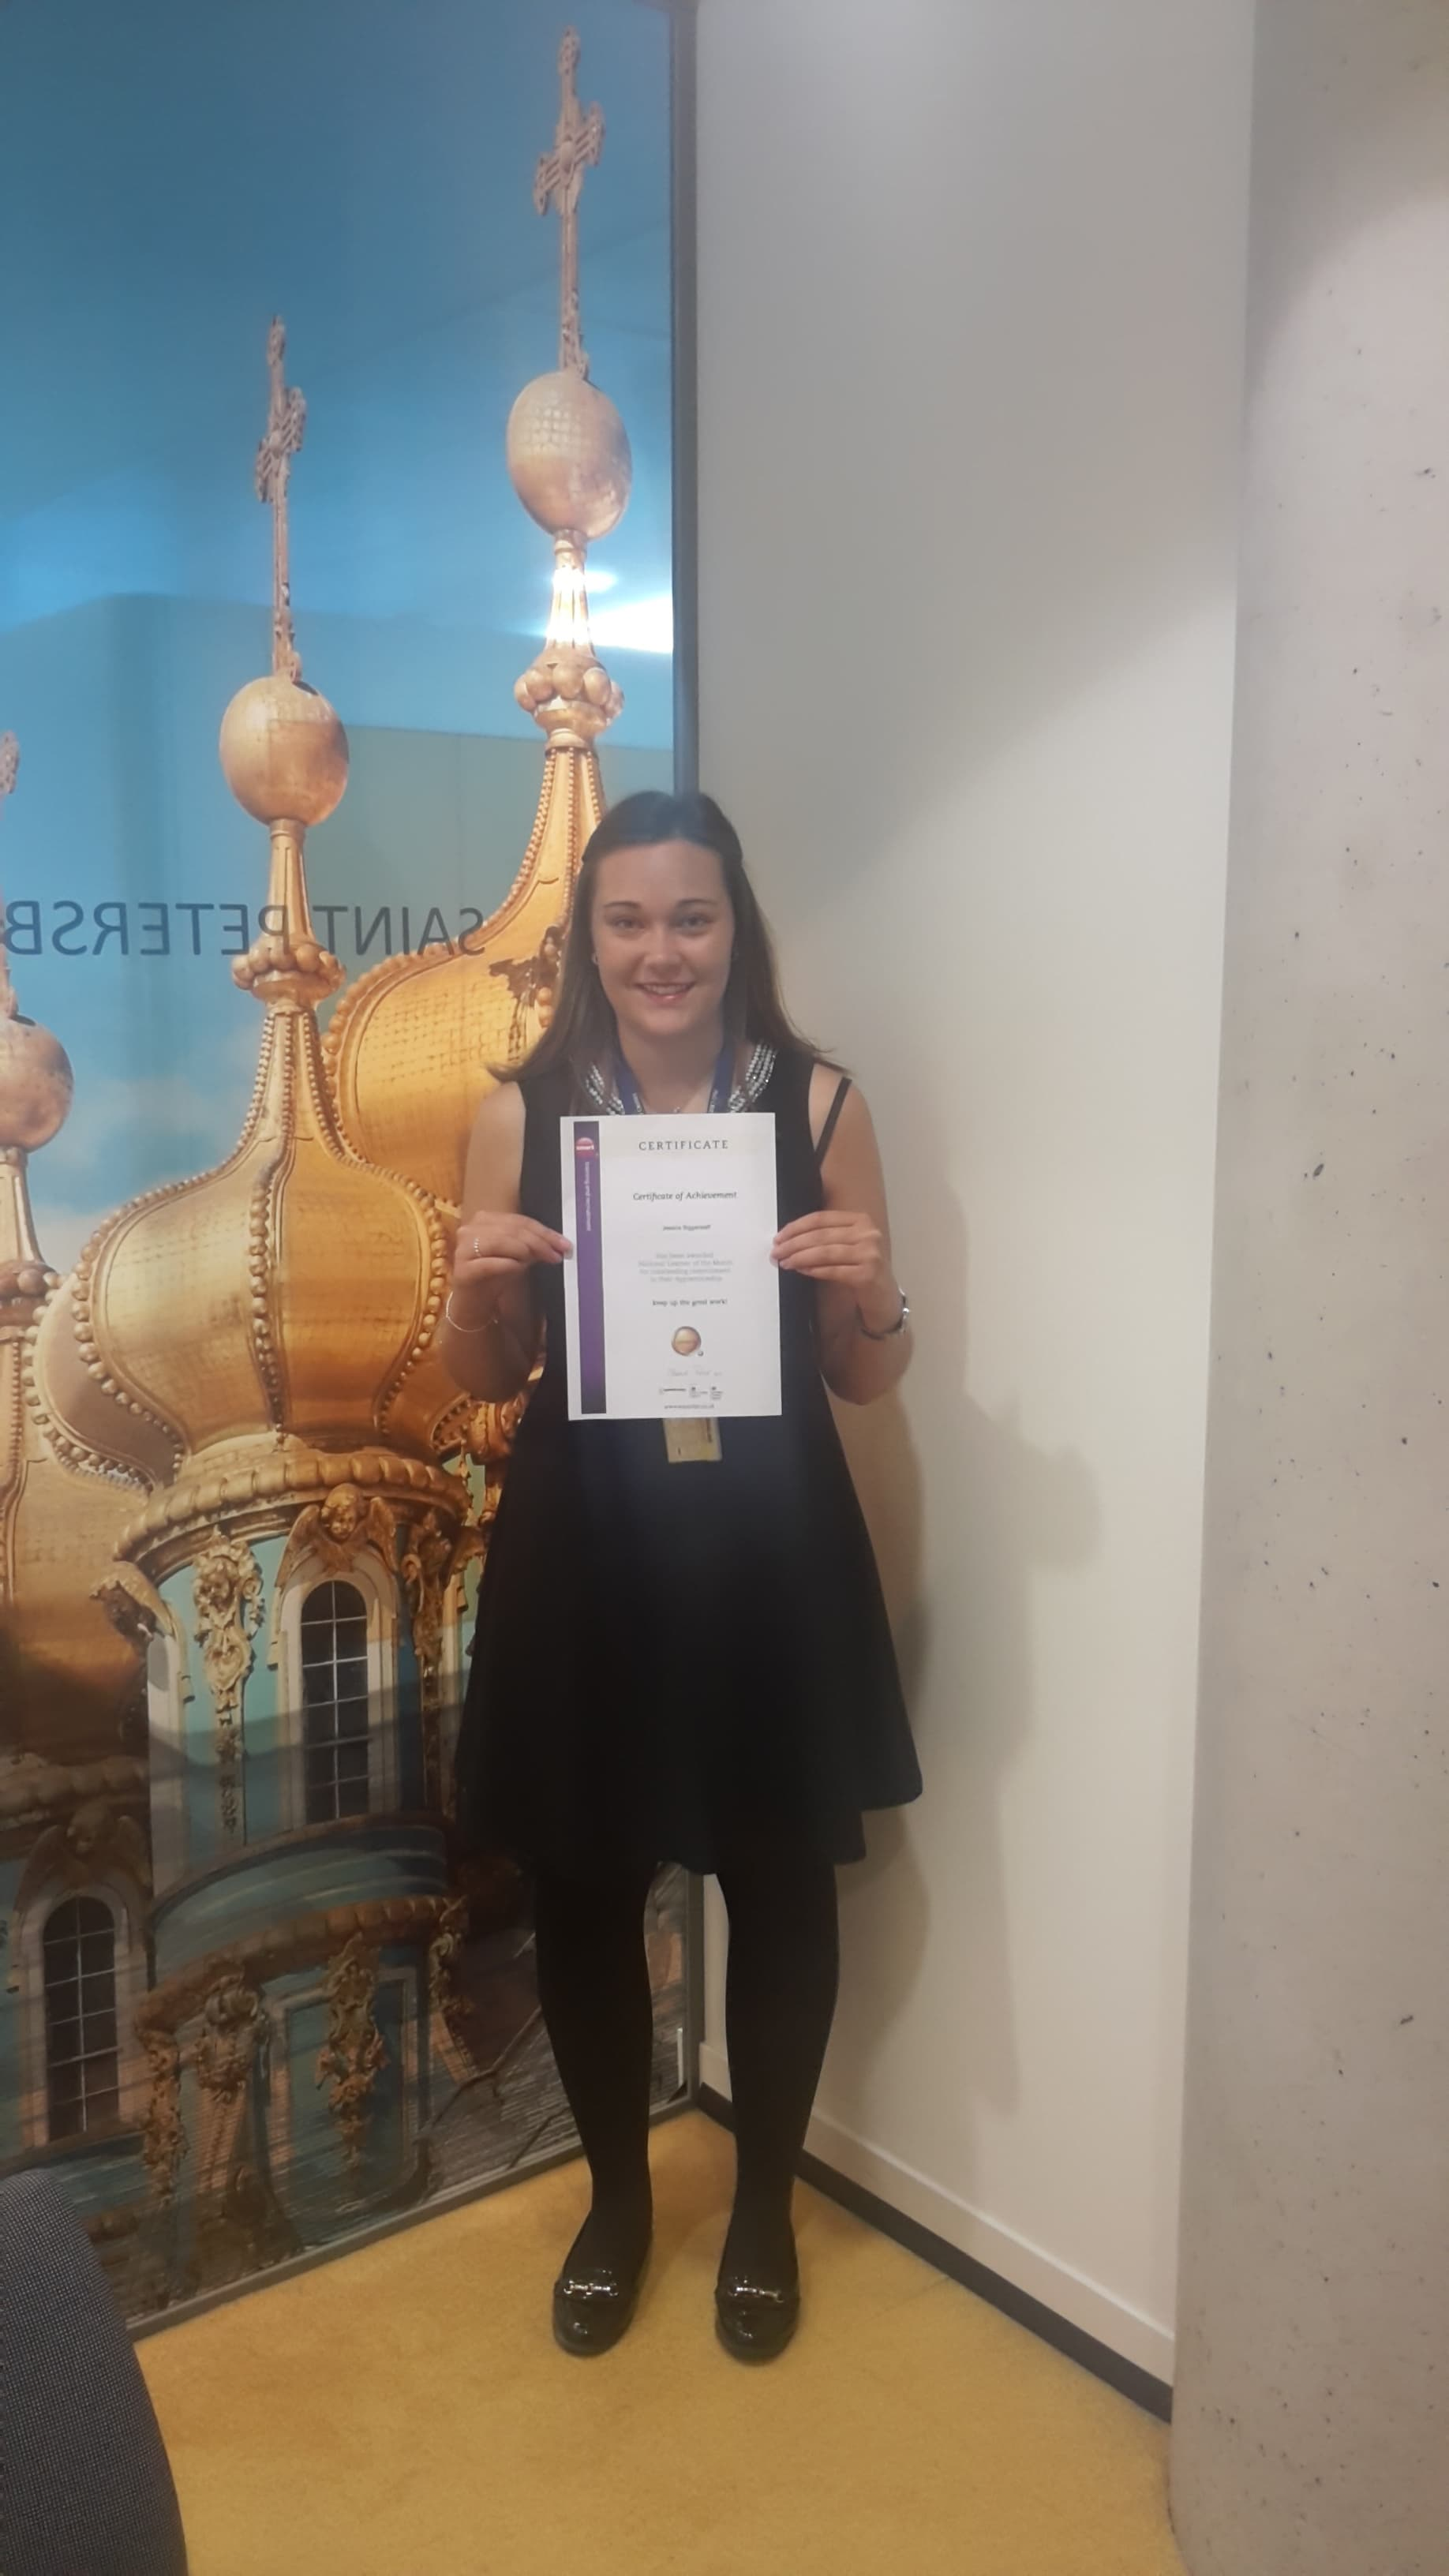 A picture of Jessica Biggerstaff with her Diploma